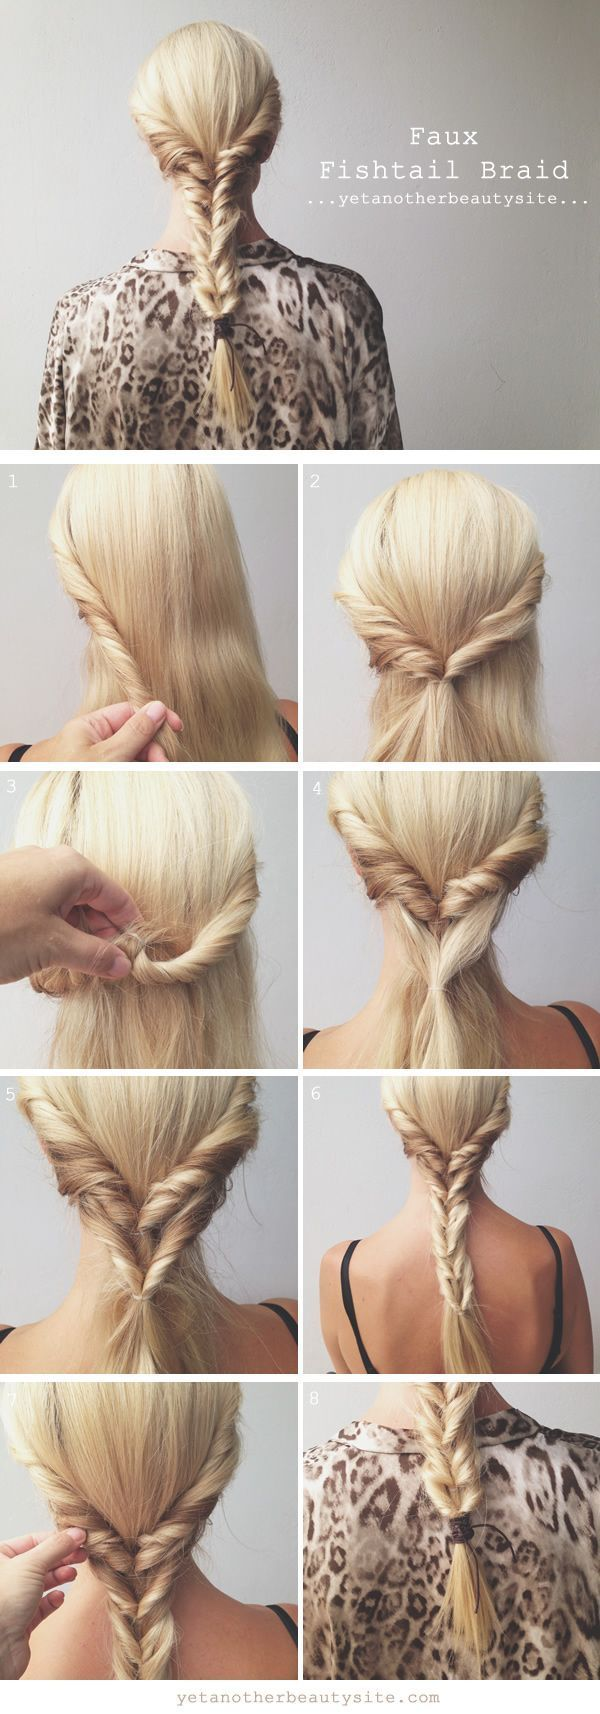 Faux Fishtail Braid penteado Tutorial